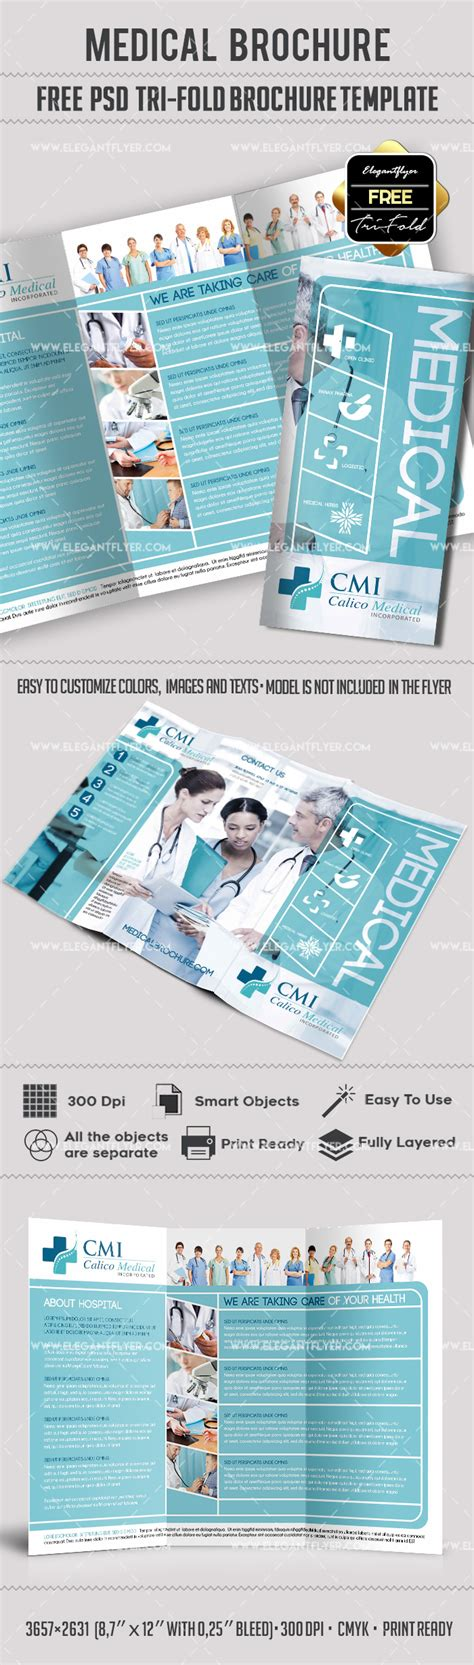 healthcare brochure templates free download 96 medical tri fold brochure templates for free medical